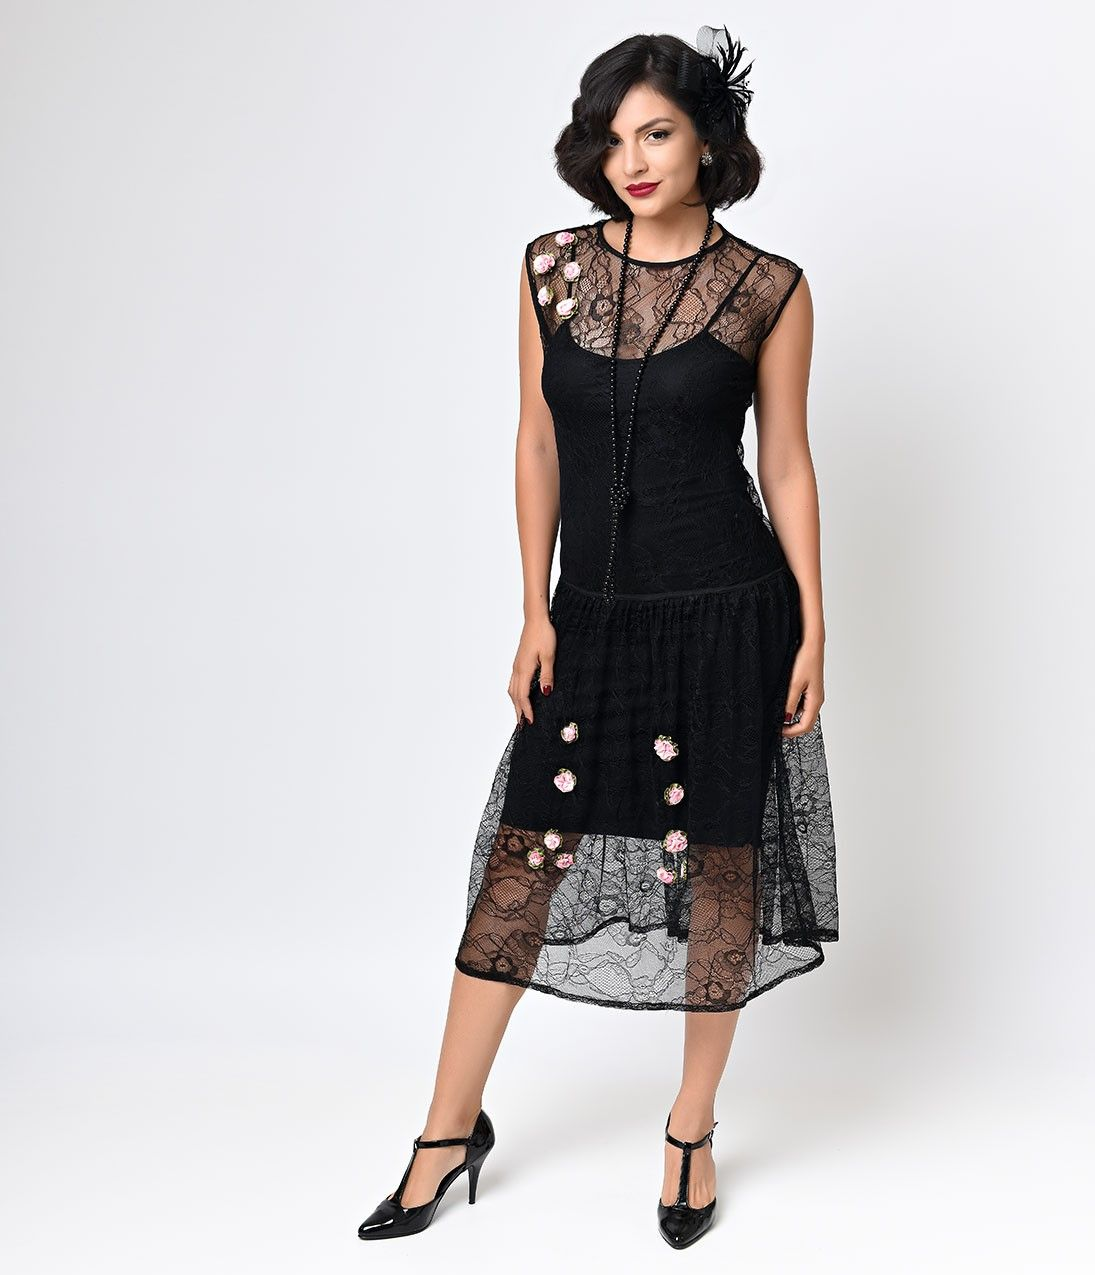 1920 lace dress  Iconic by UV s Black Lace Rosette Gypsy Flapper Dress  r